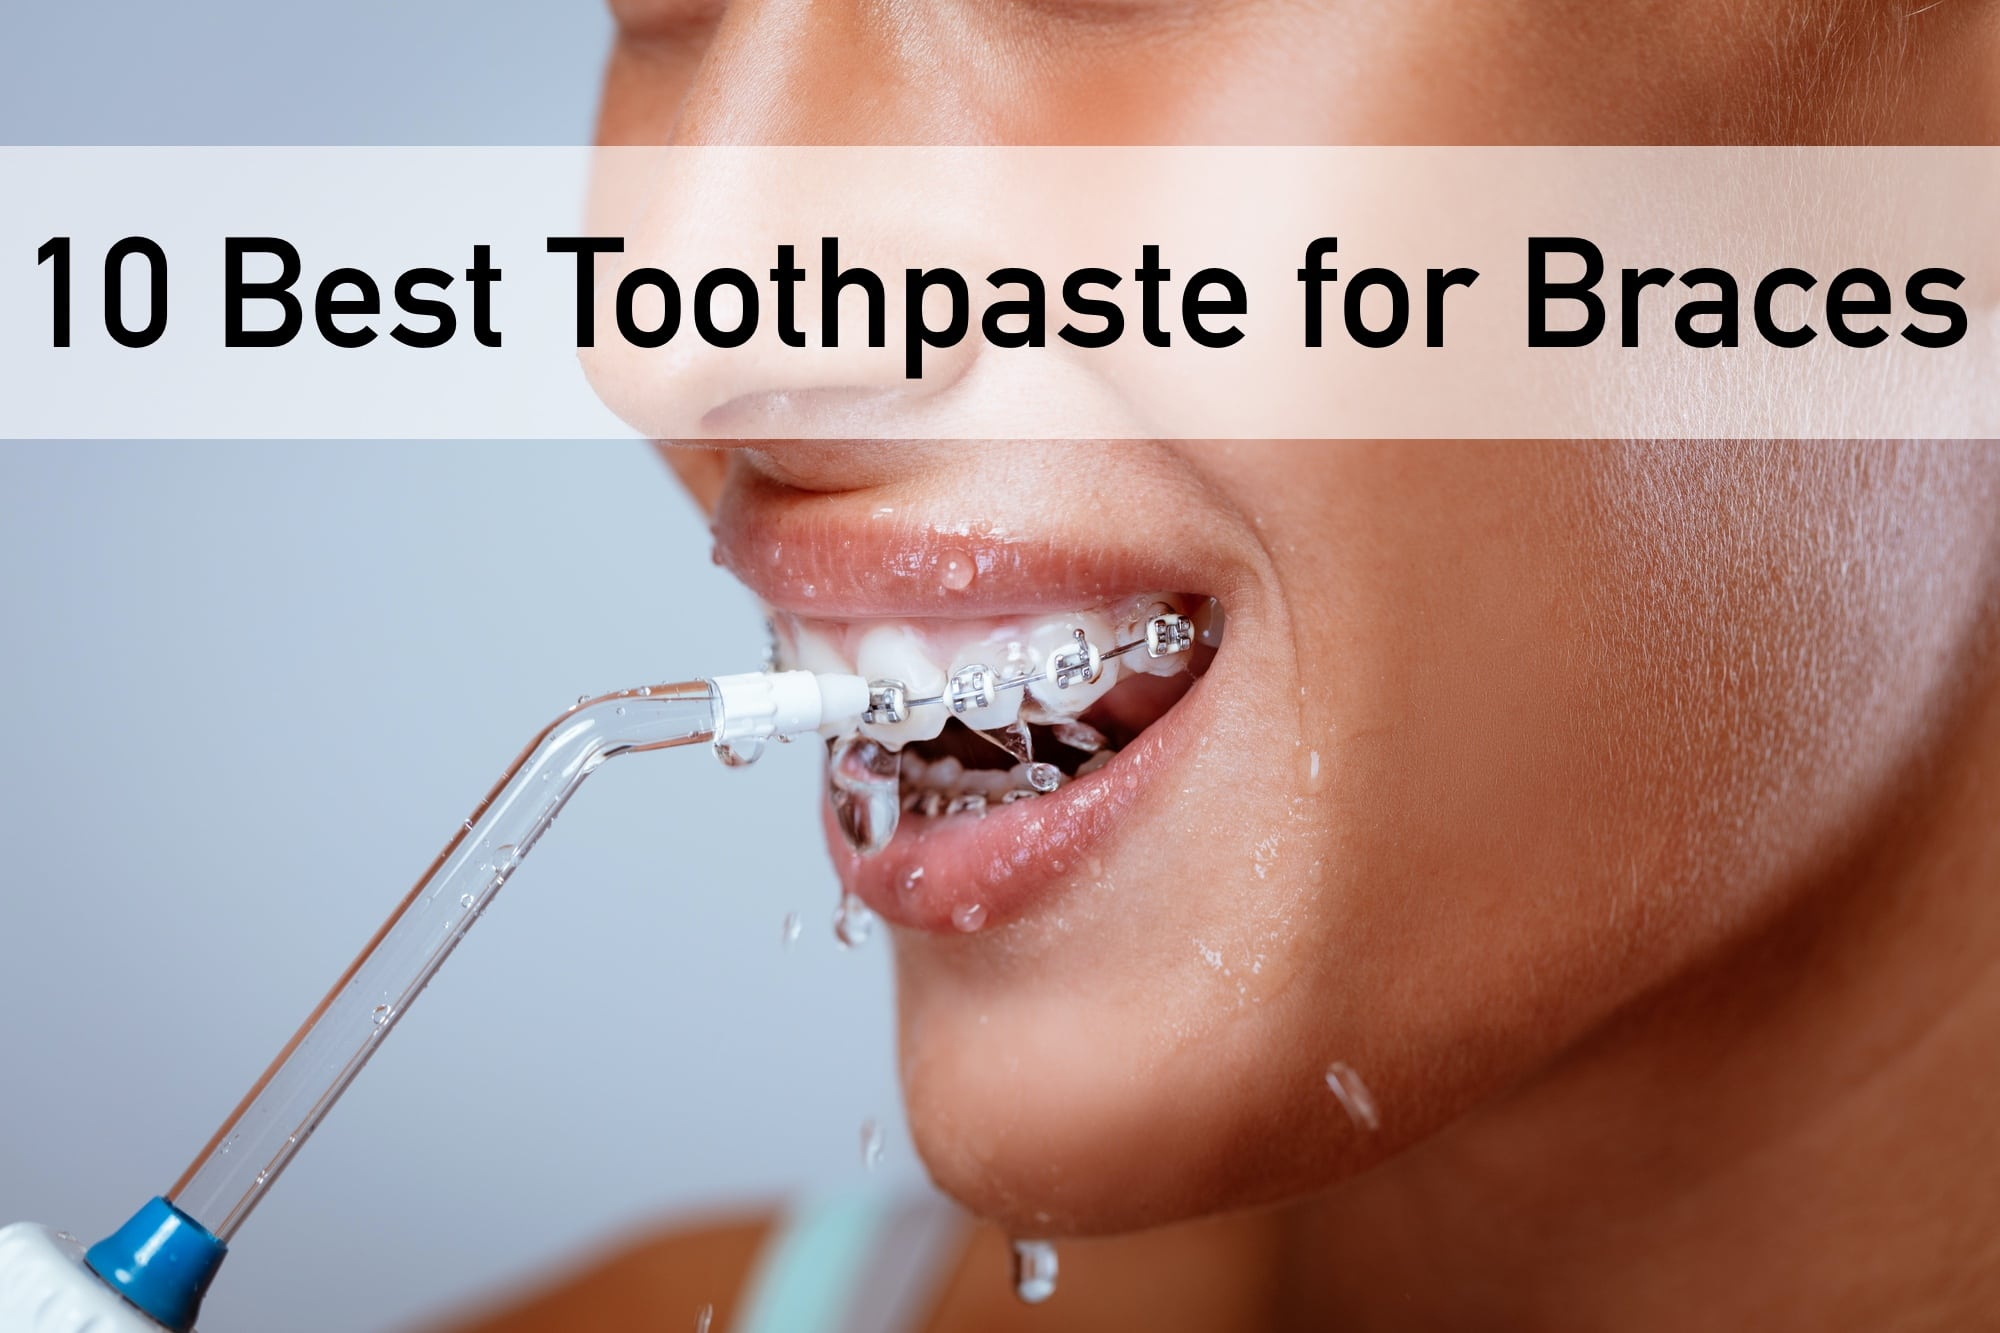 10 Best Toothpaste for Braces